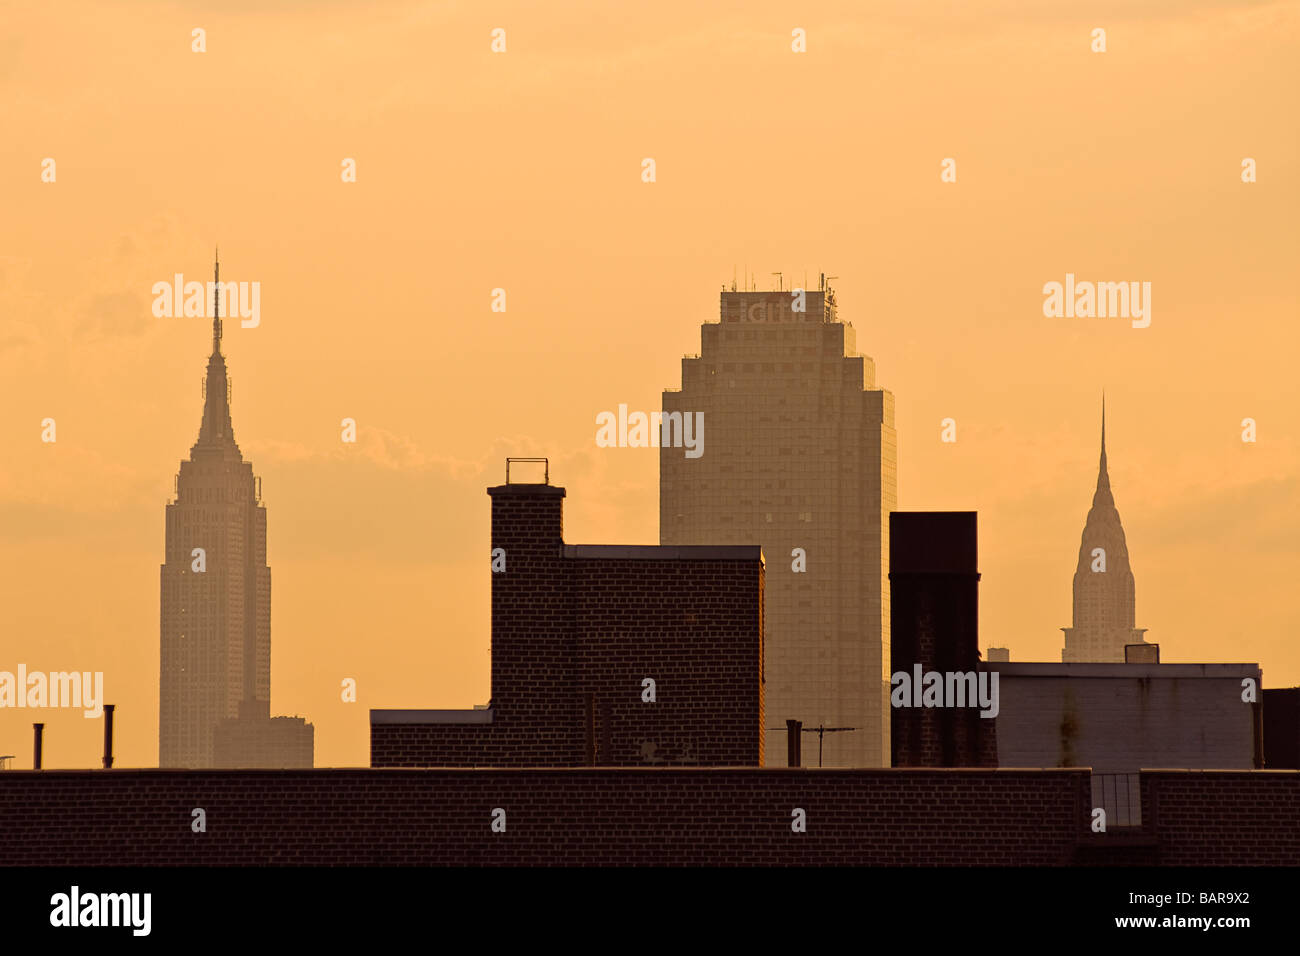 El Empire State Building, el Edificio Chrysler y el Queens Citicorp Building, Long Island City, Queens, Nueva York. Imagen De Stock